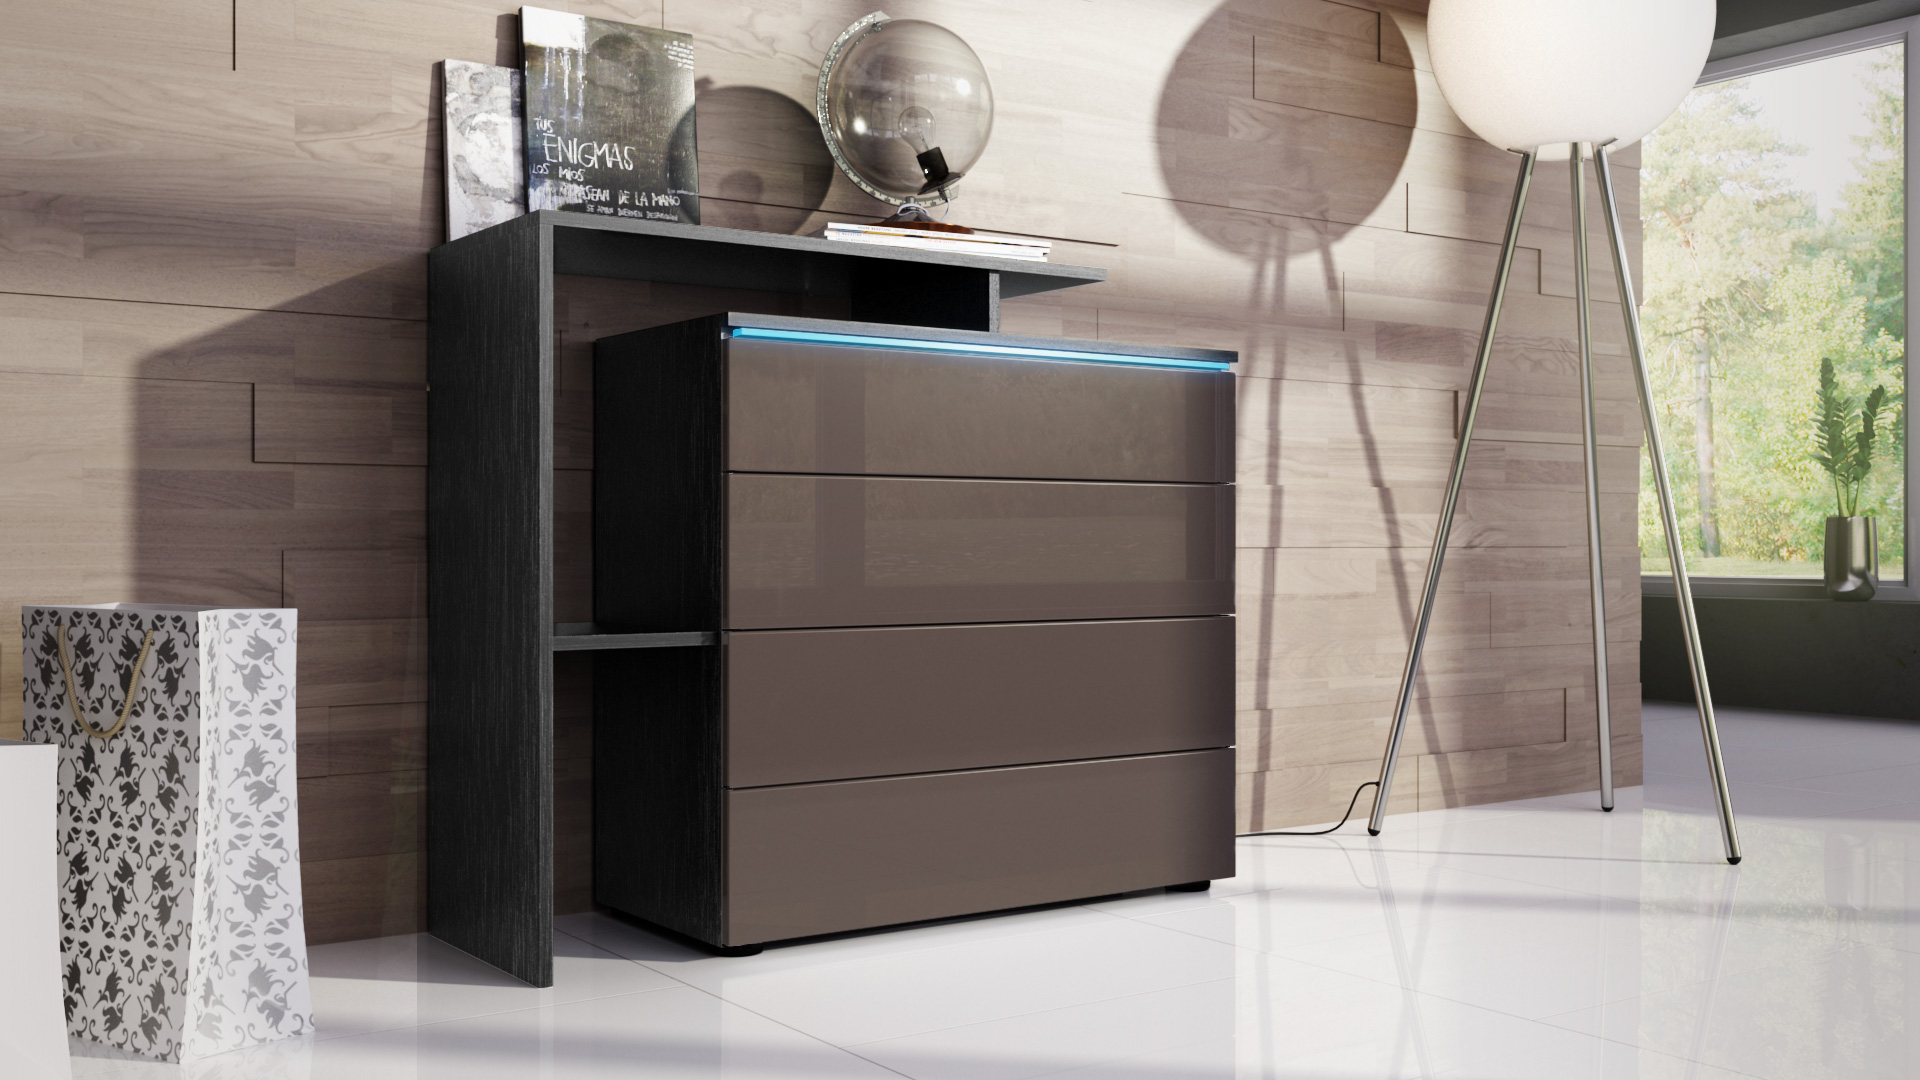 kommode schrank anrichte sideboard lissabon v2 in schwarz. Black Bedroom Furniture Sets. Home Design Ideas